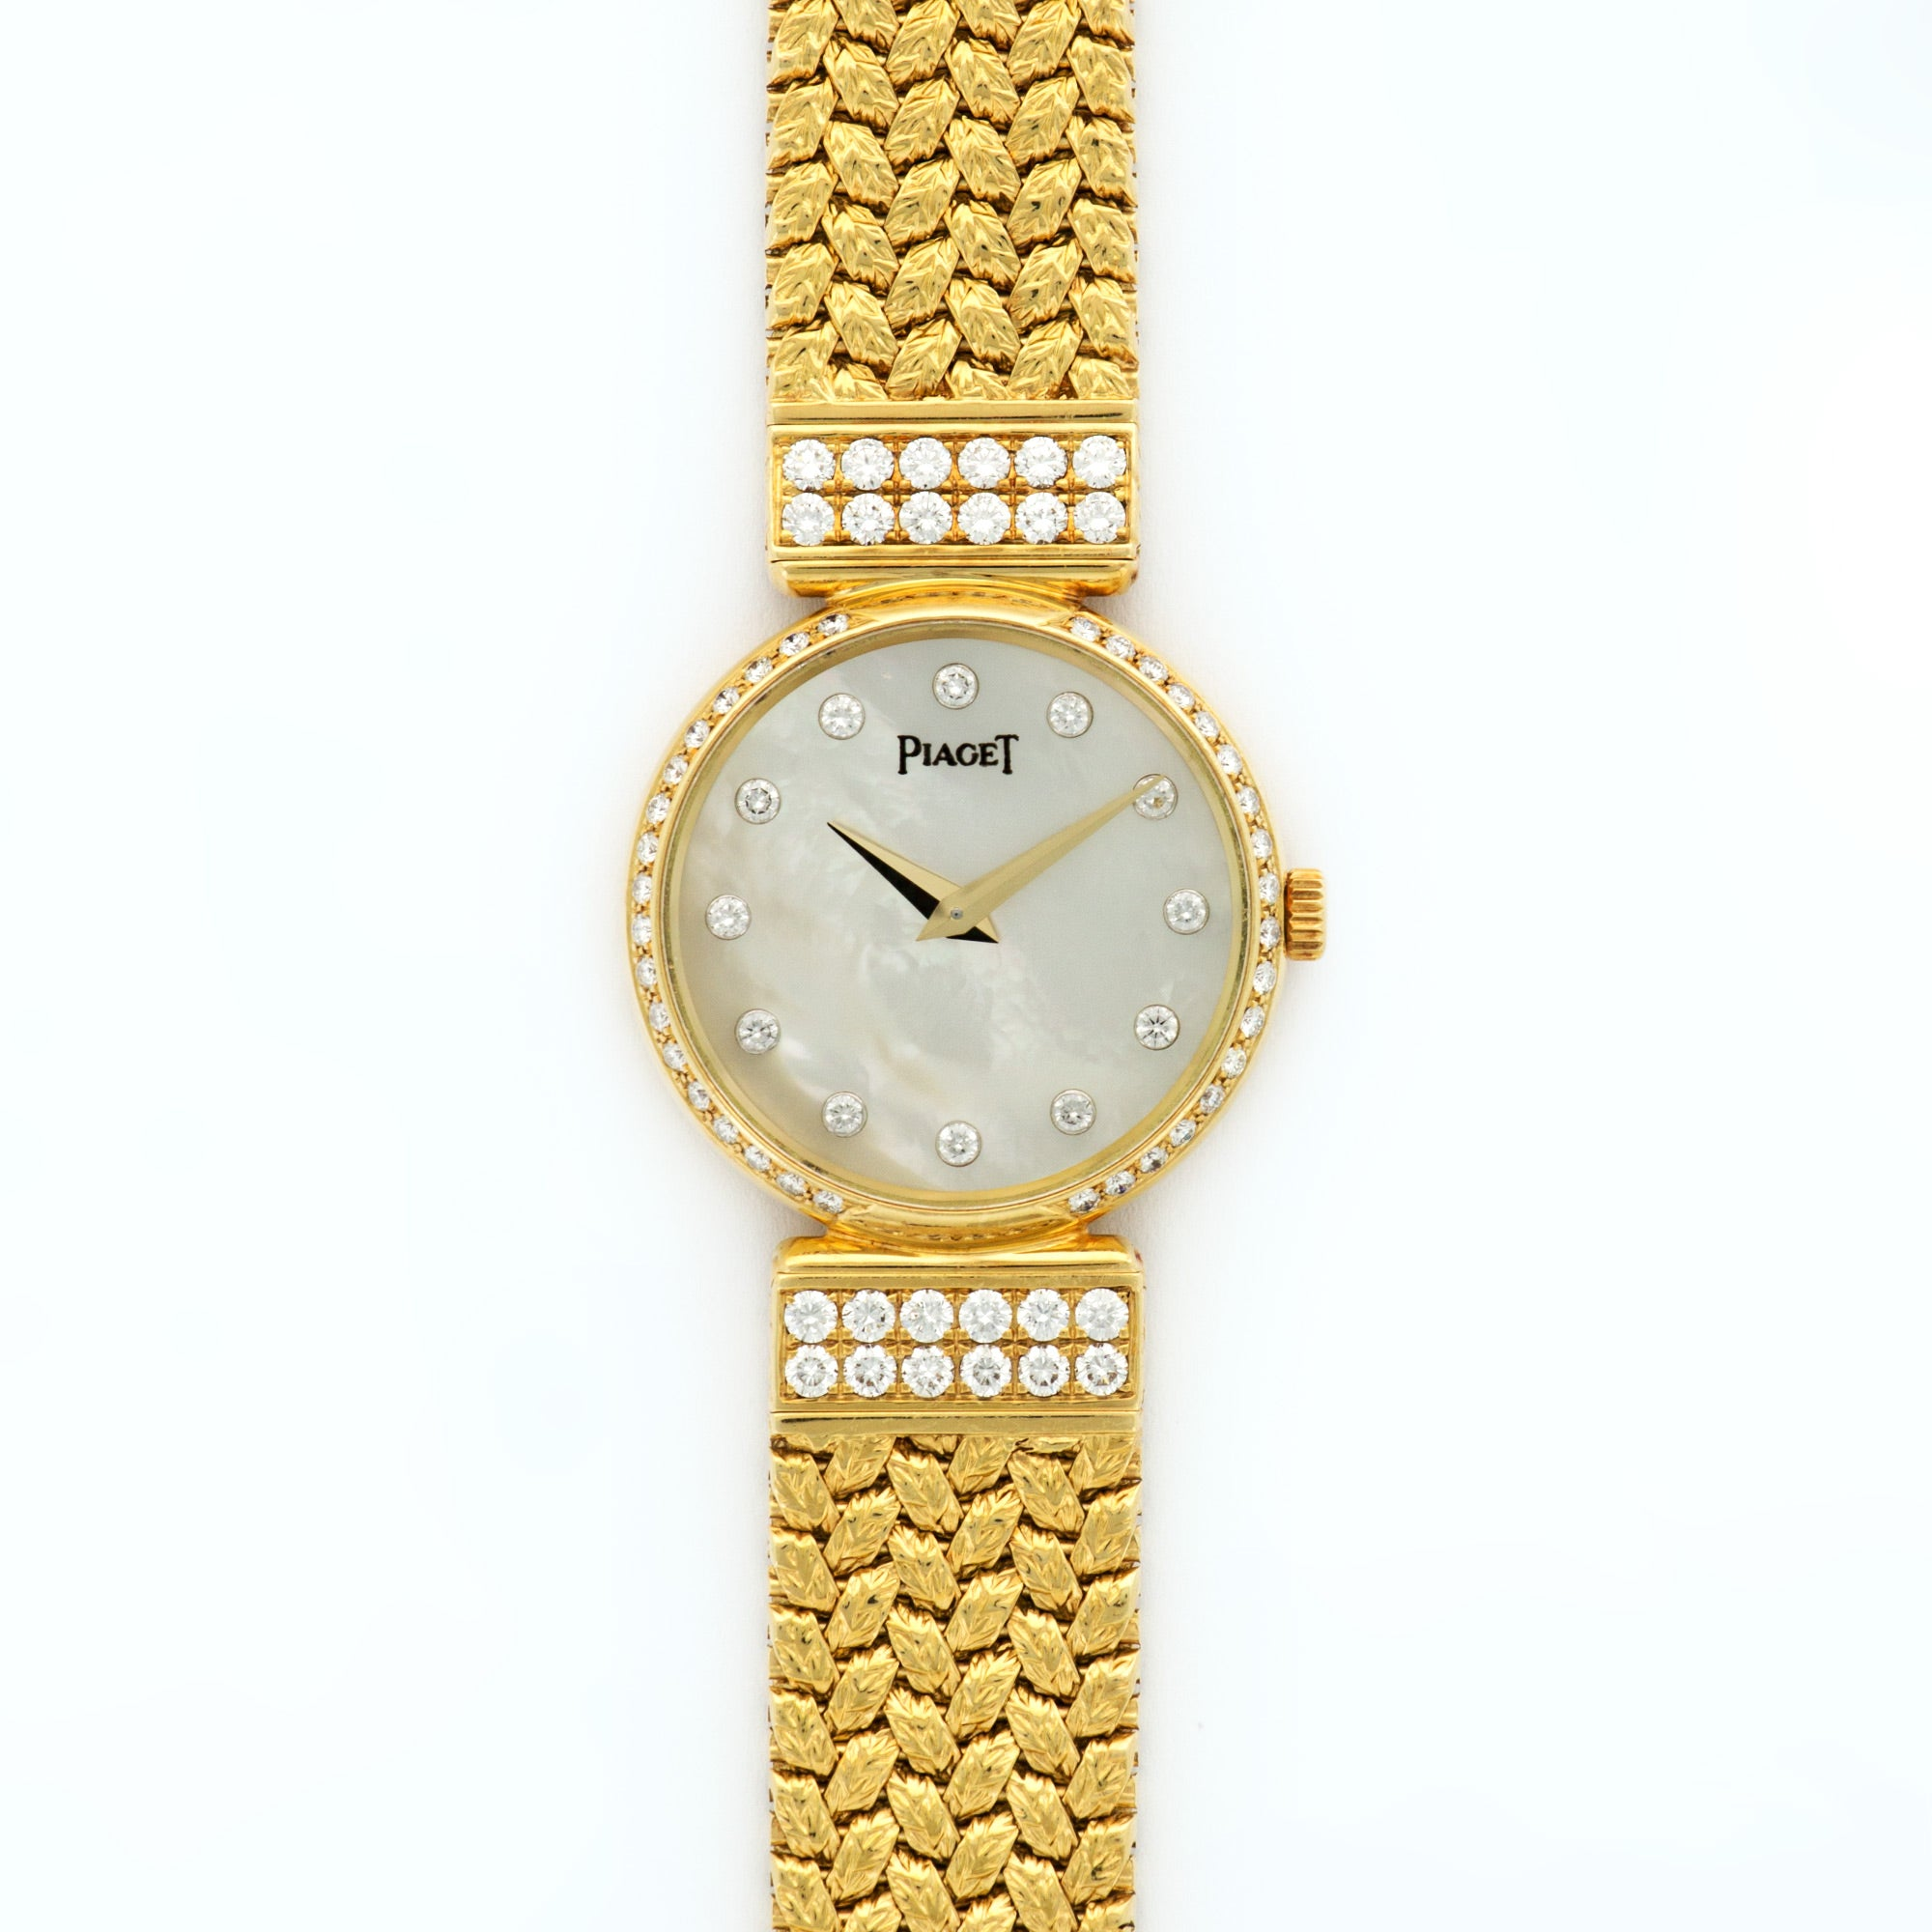 Piaget Vintage 80552 18k YG  Excellent Ladies 18k YG Mother of Pearl with Diamond Markers 23mm Quartz 1970s Yellow Gold Bracelet (180mm) N/A